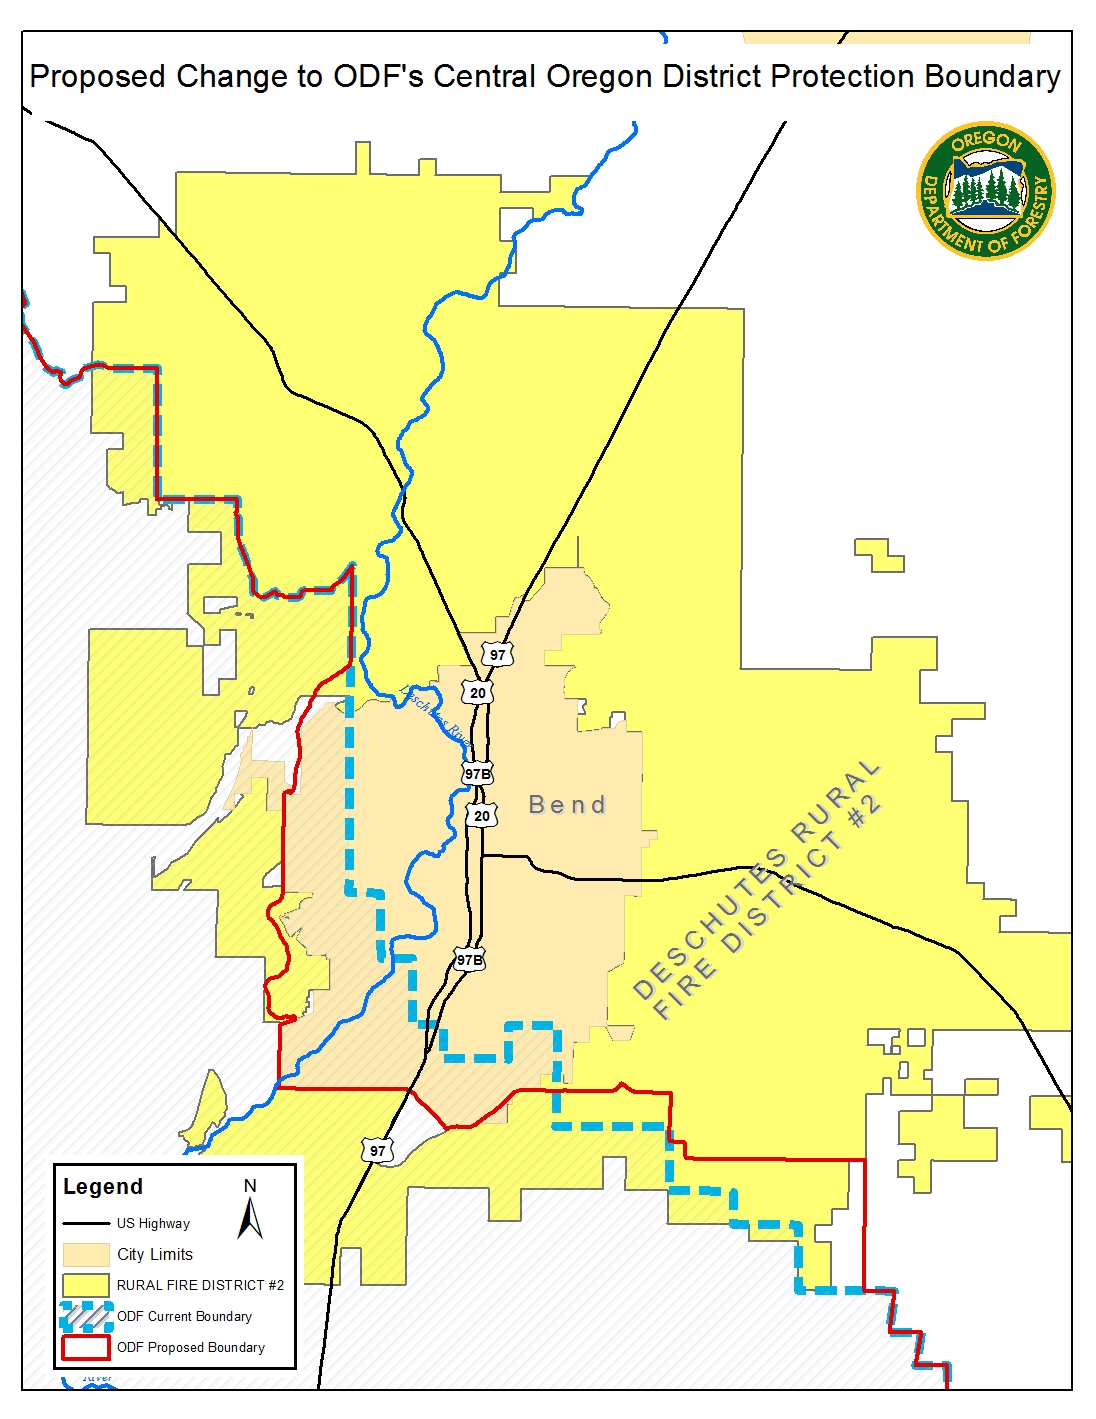 deschutes county boundary relocation